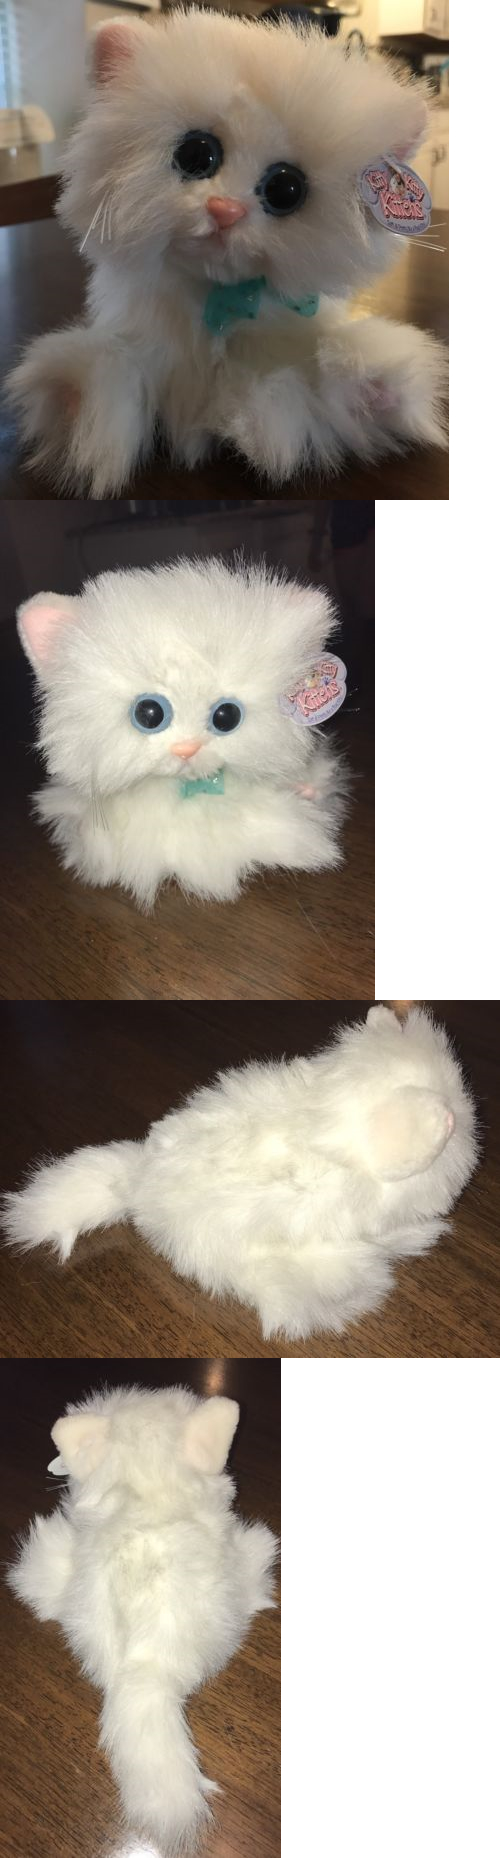 Other Stuffed Animals 230 Nwt 2000 Kitty Kitty Kittens Snowball